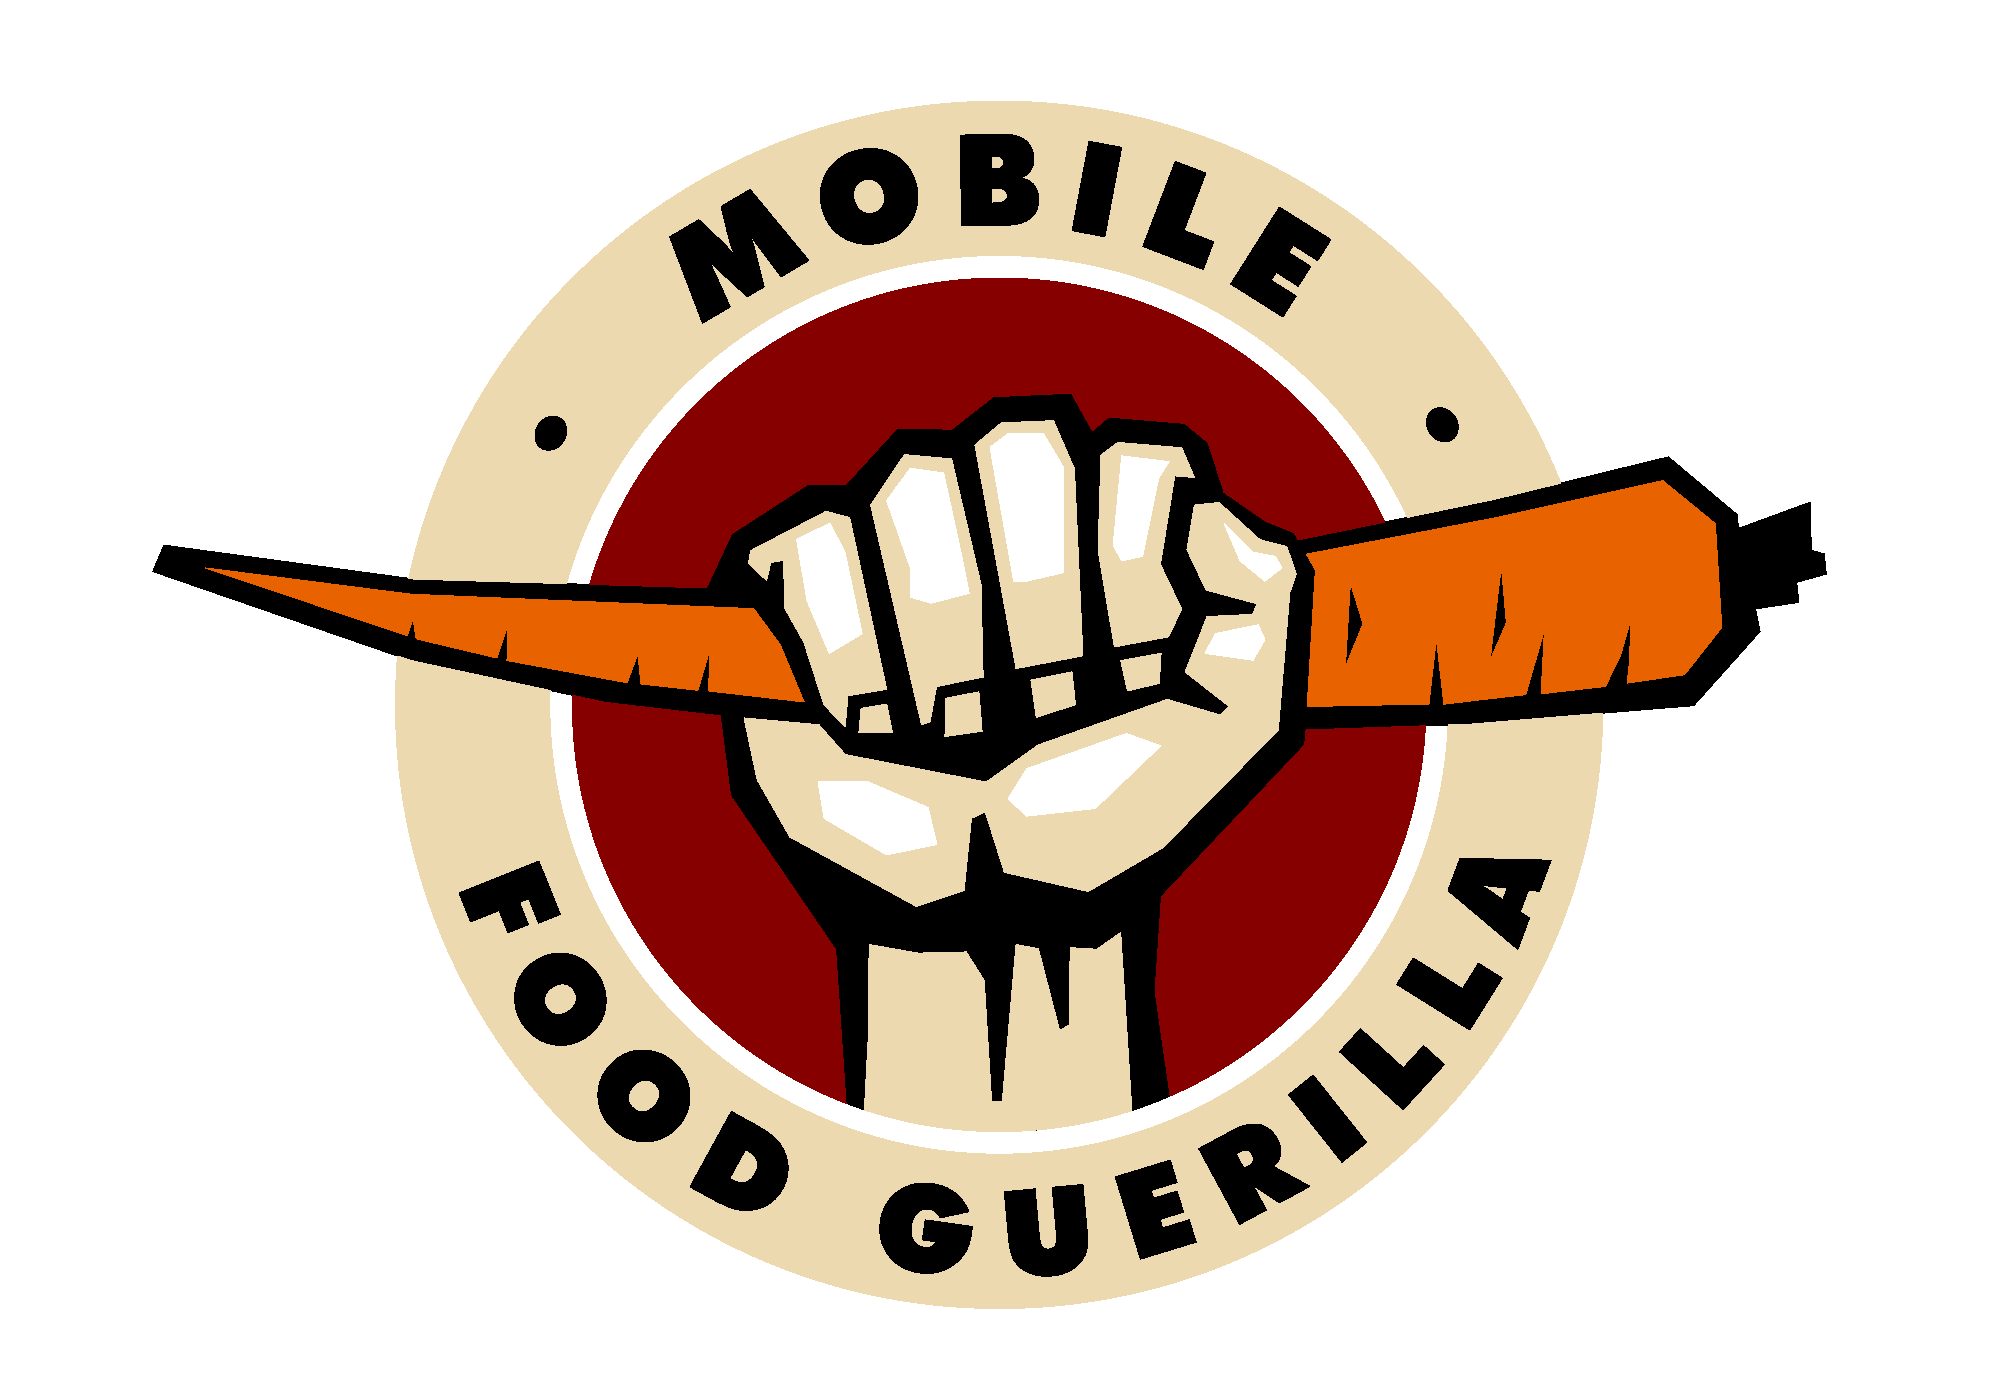 Mobile Food Guerilla Logo